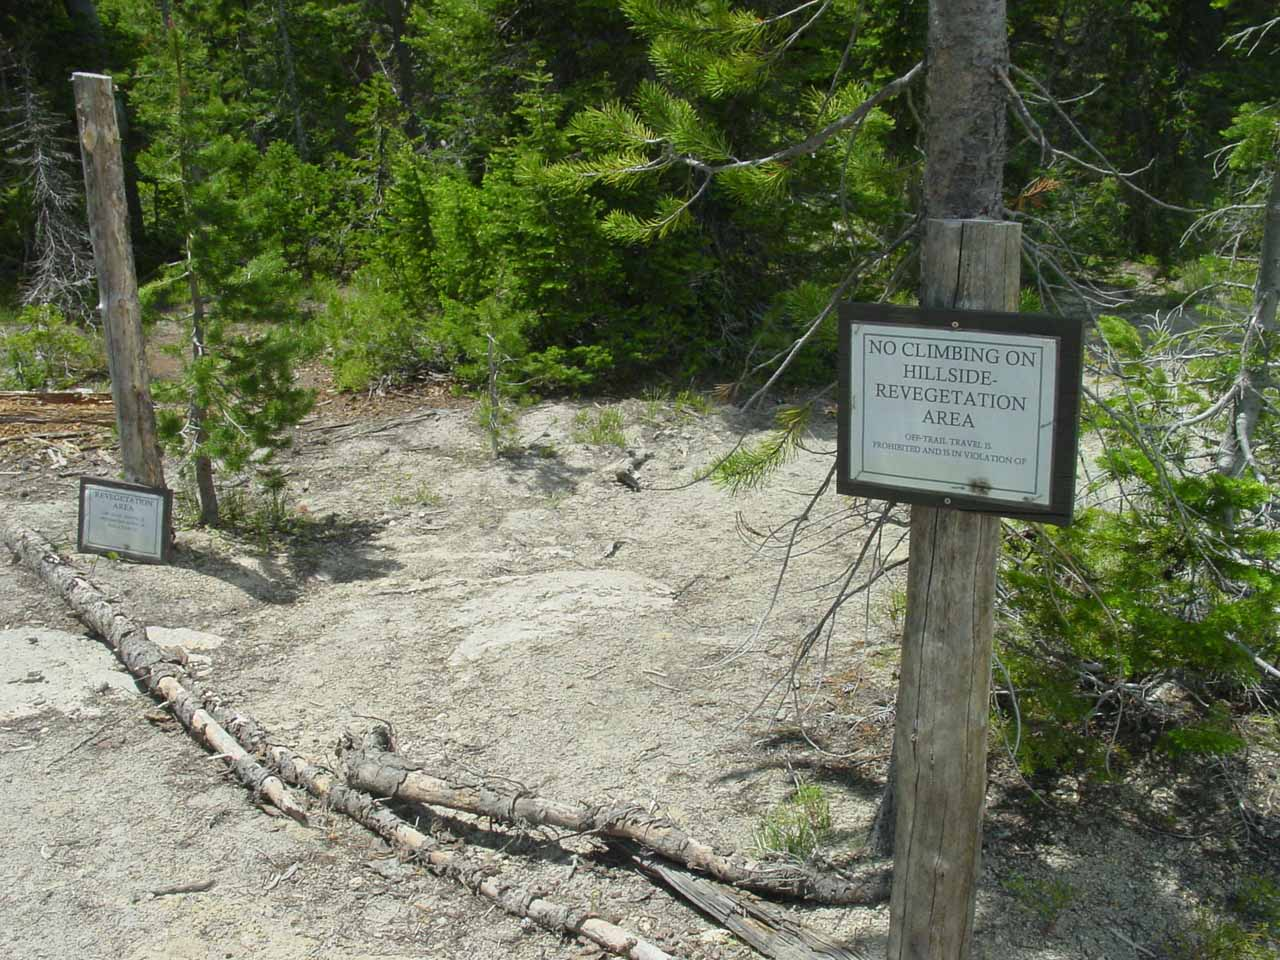 Back during our first visit in June 2004, we saw these signs discouraging further progress